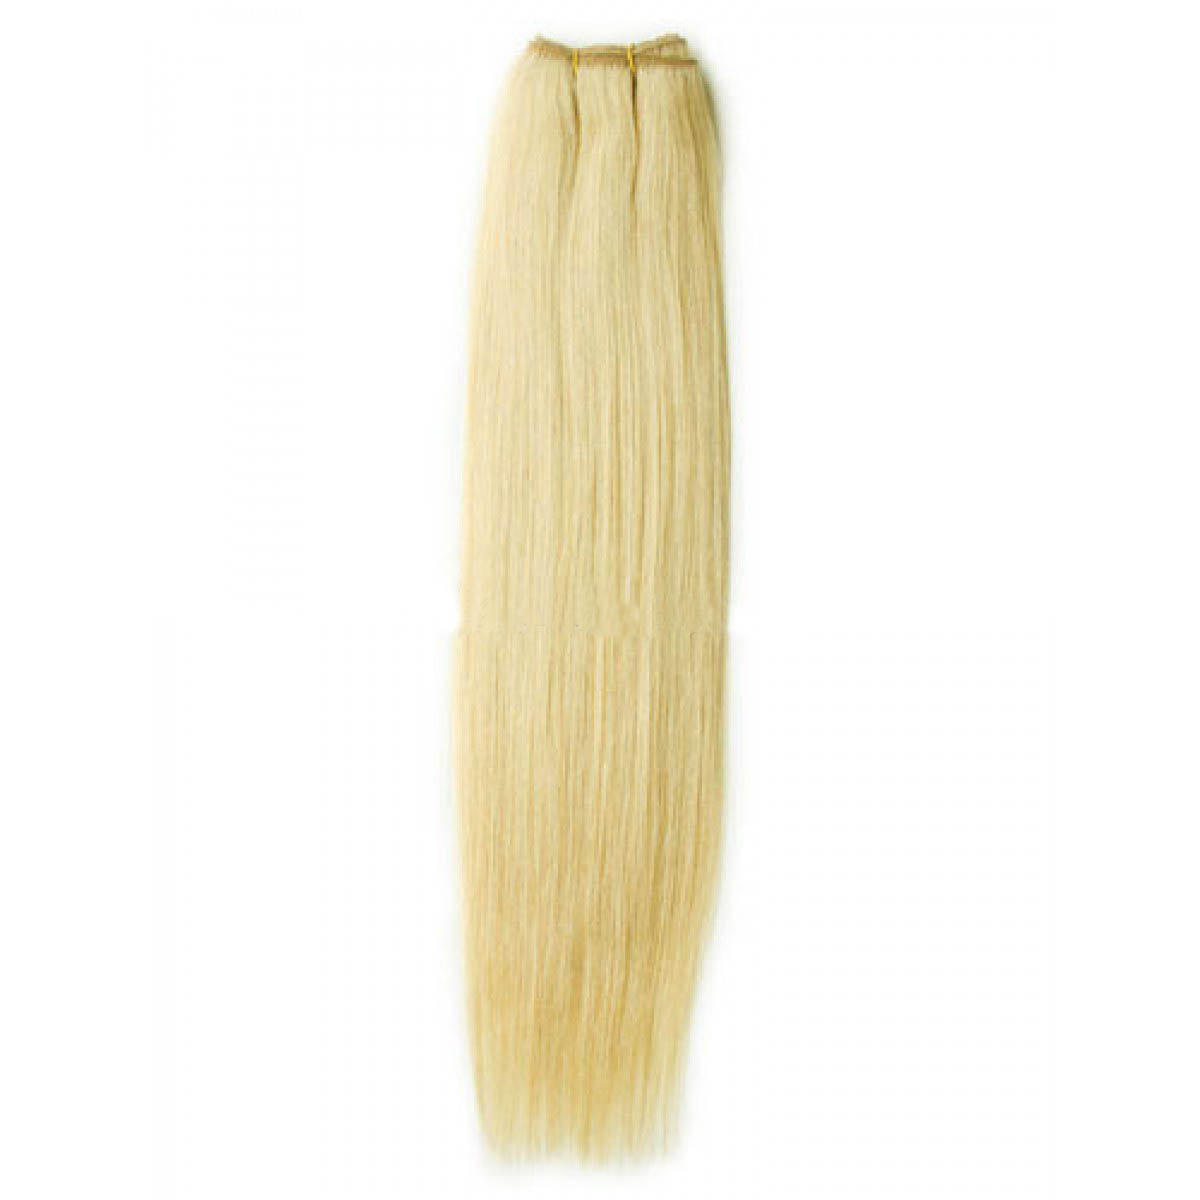 14 Inch #24 Ash Blonde Straight Indian Remy Hair Wefts no 1